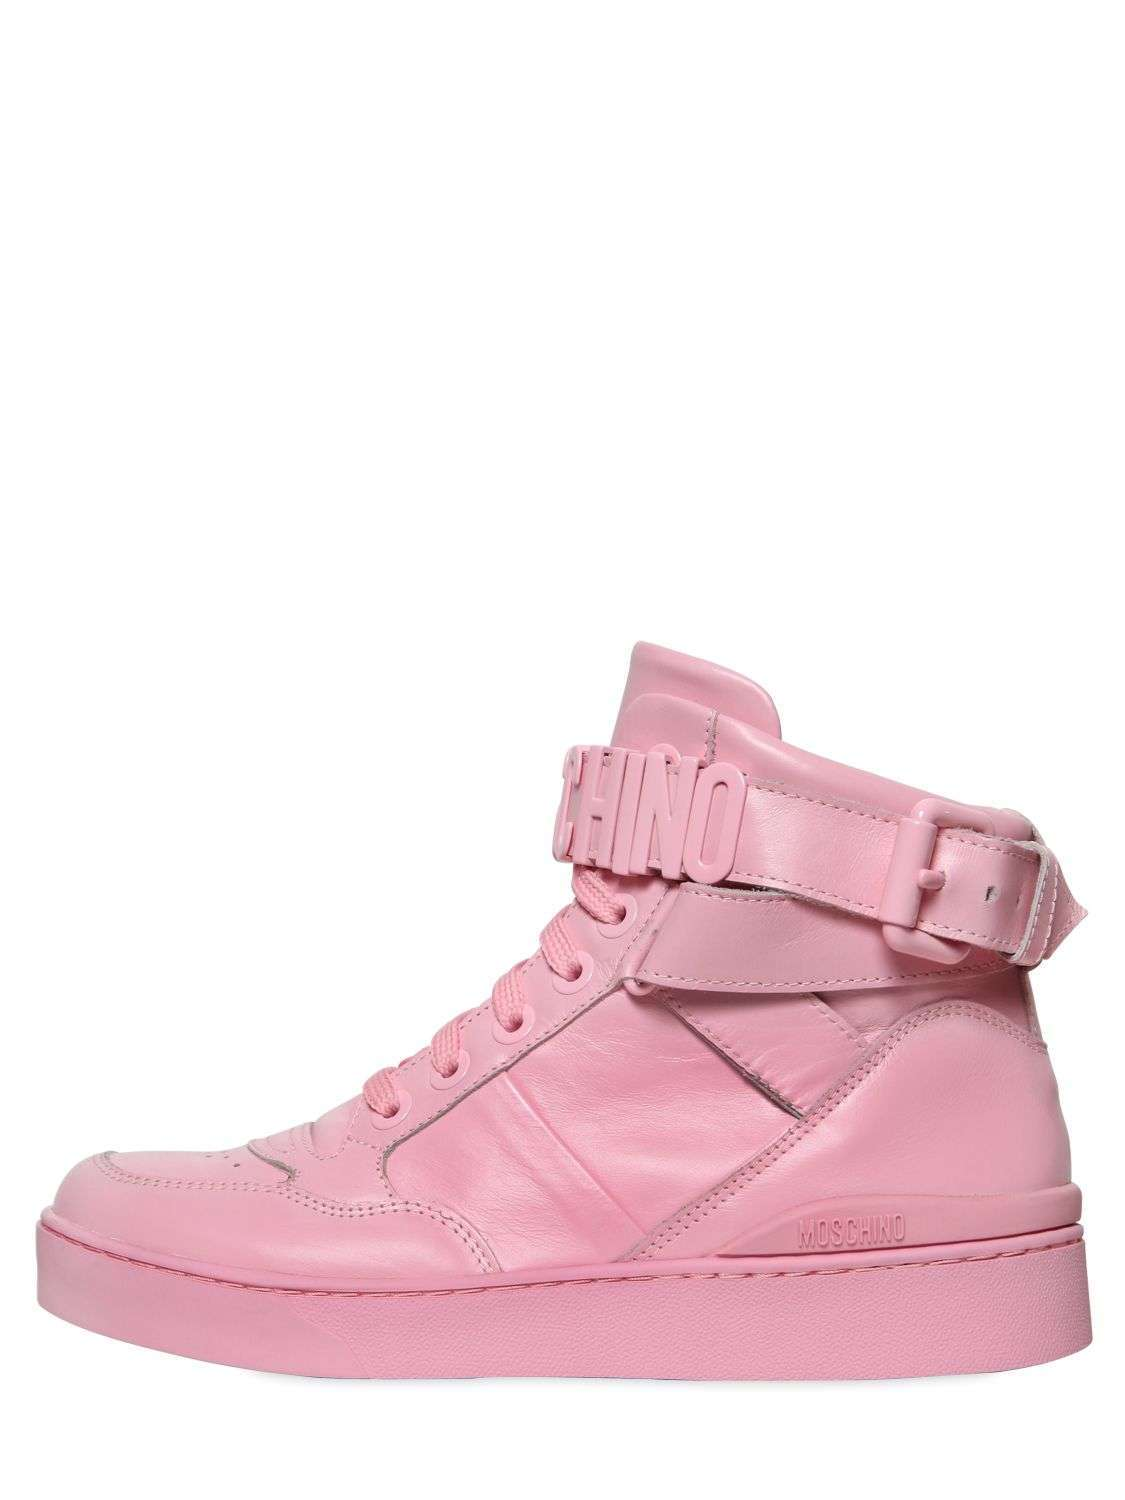 Sneakers alte rosa Moschino